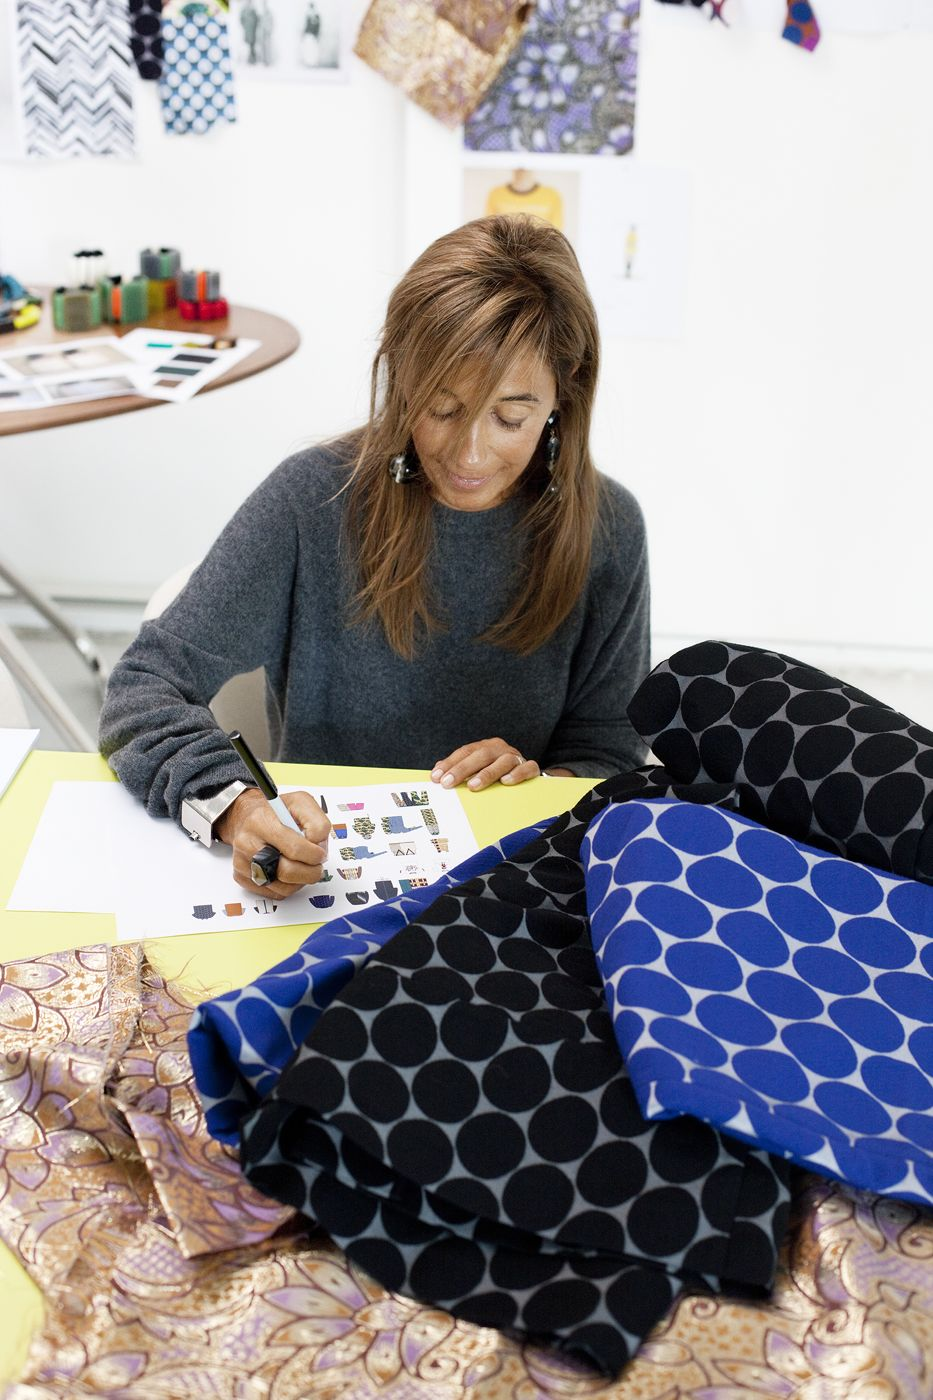 Working process Consuelo Castiglioni Founder and Creative Director of Marni